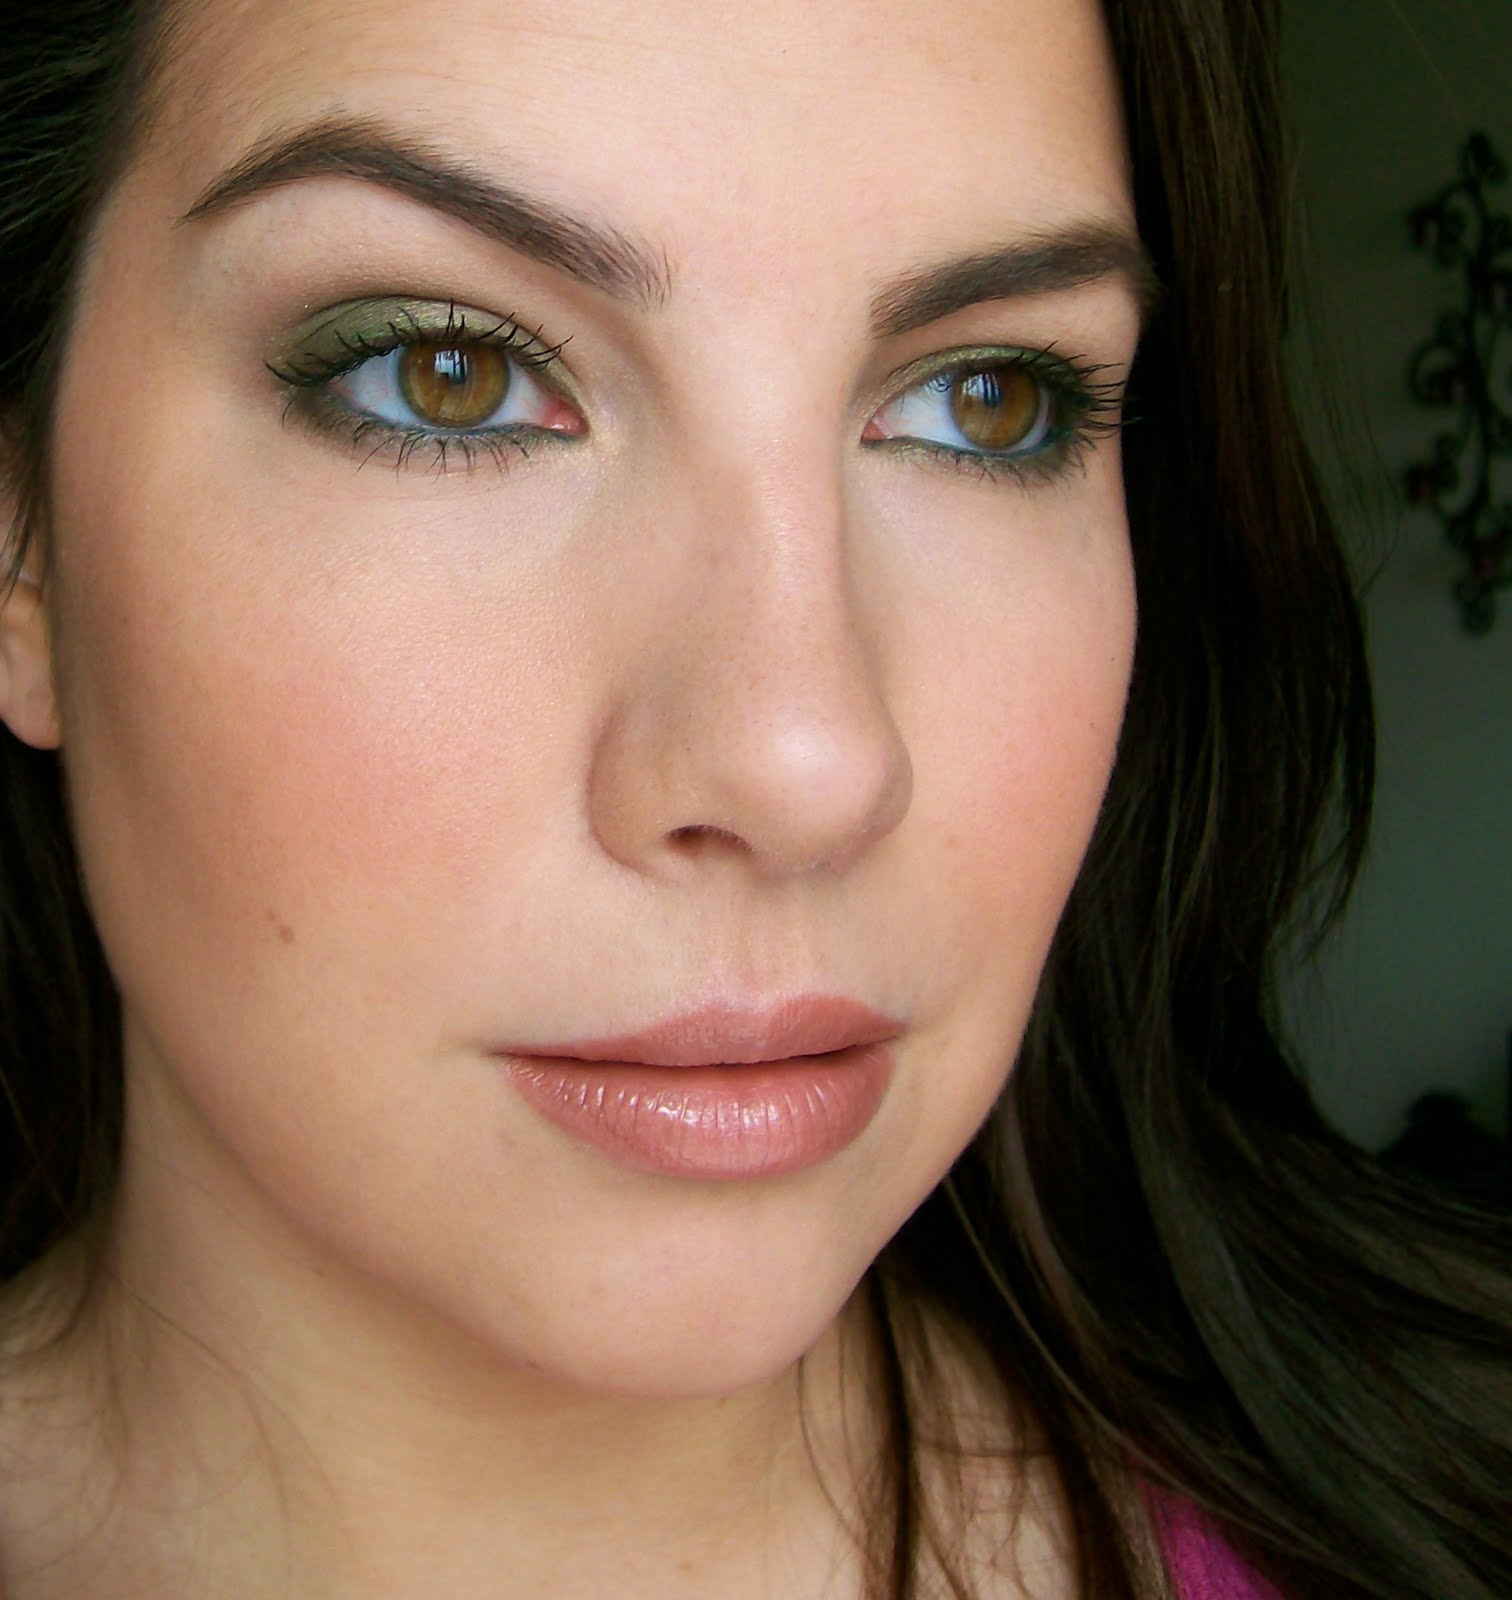 eyeshadow Face beauty the  covergirl skincare  (FOTD)  brown Day BROADCAST: of for  BEAUTY eyes